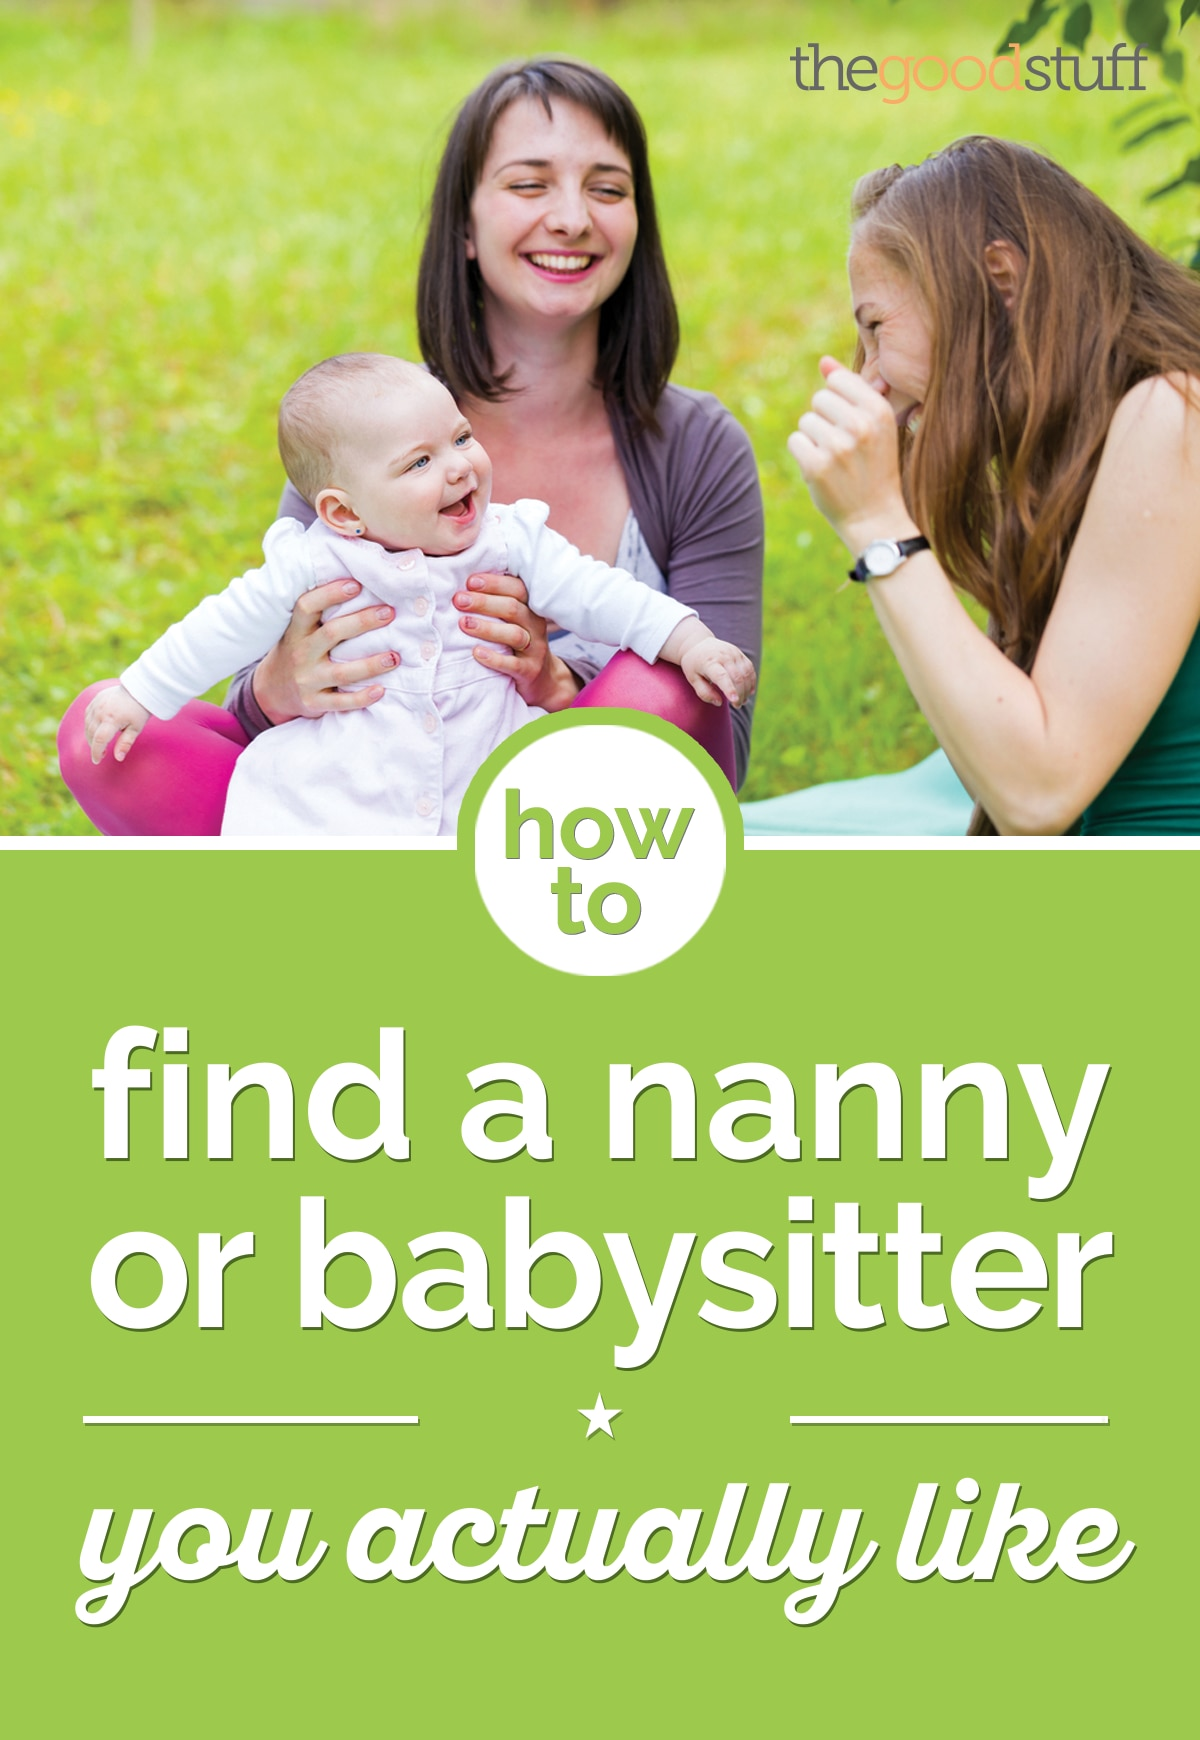 How to Find a Nanny or Babysitter You Actually Like | thegoodstuff